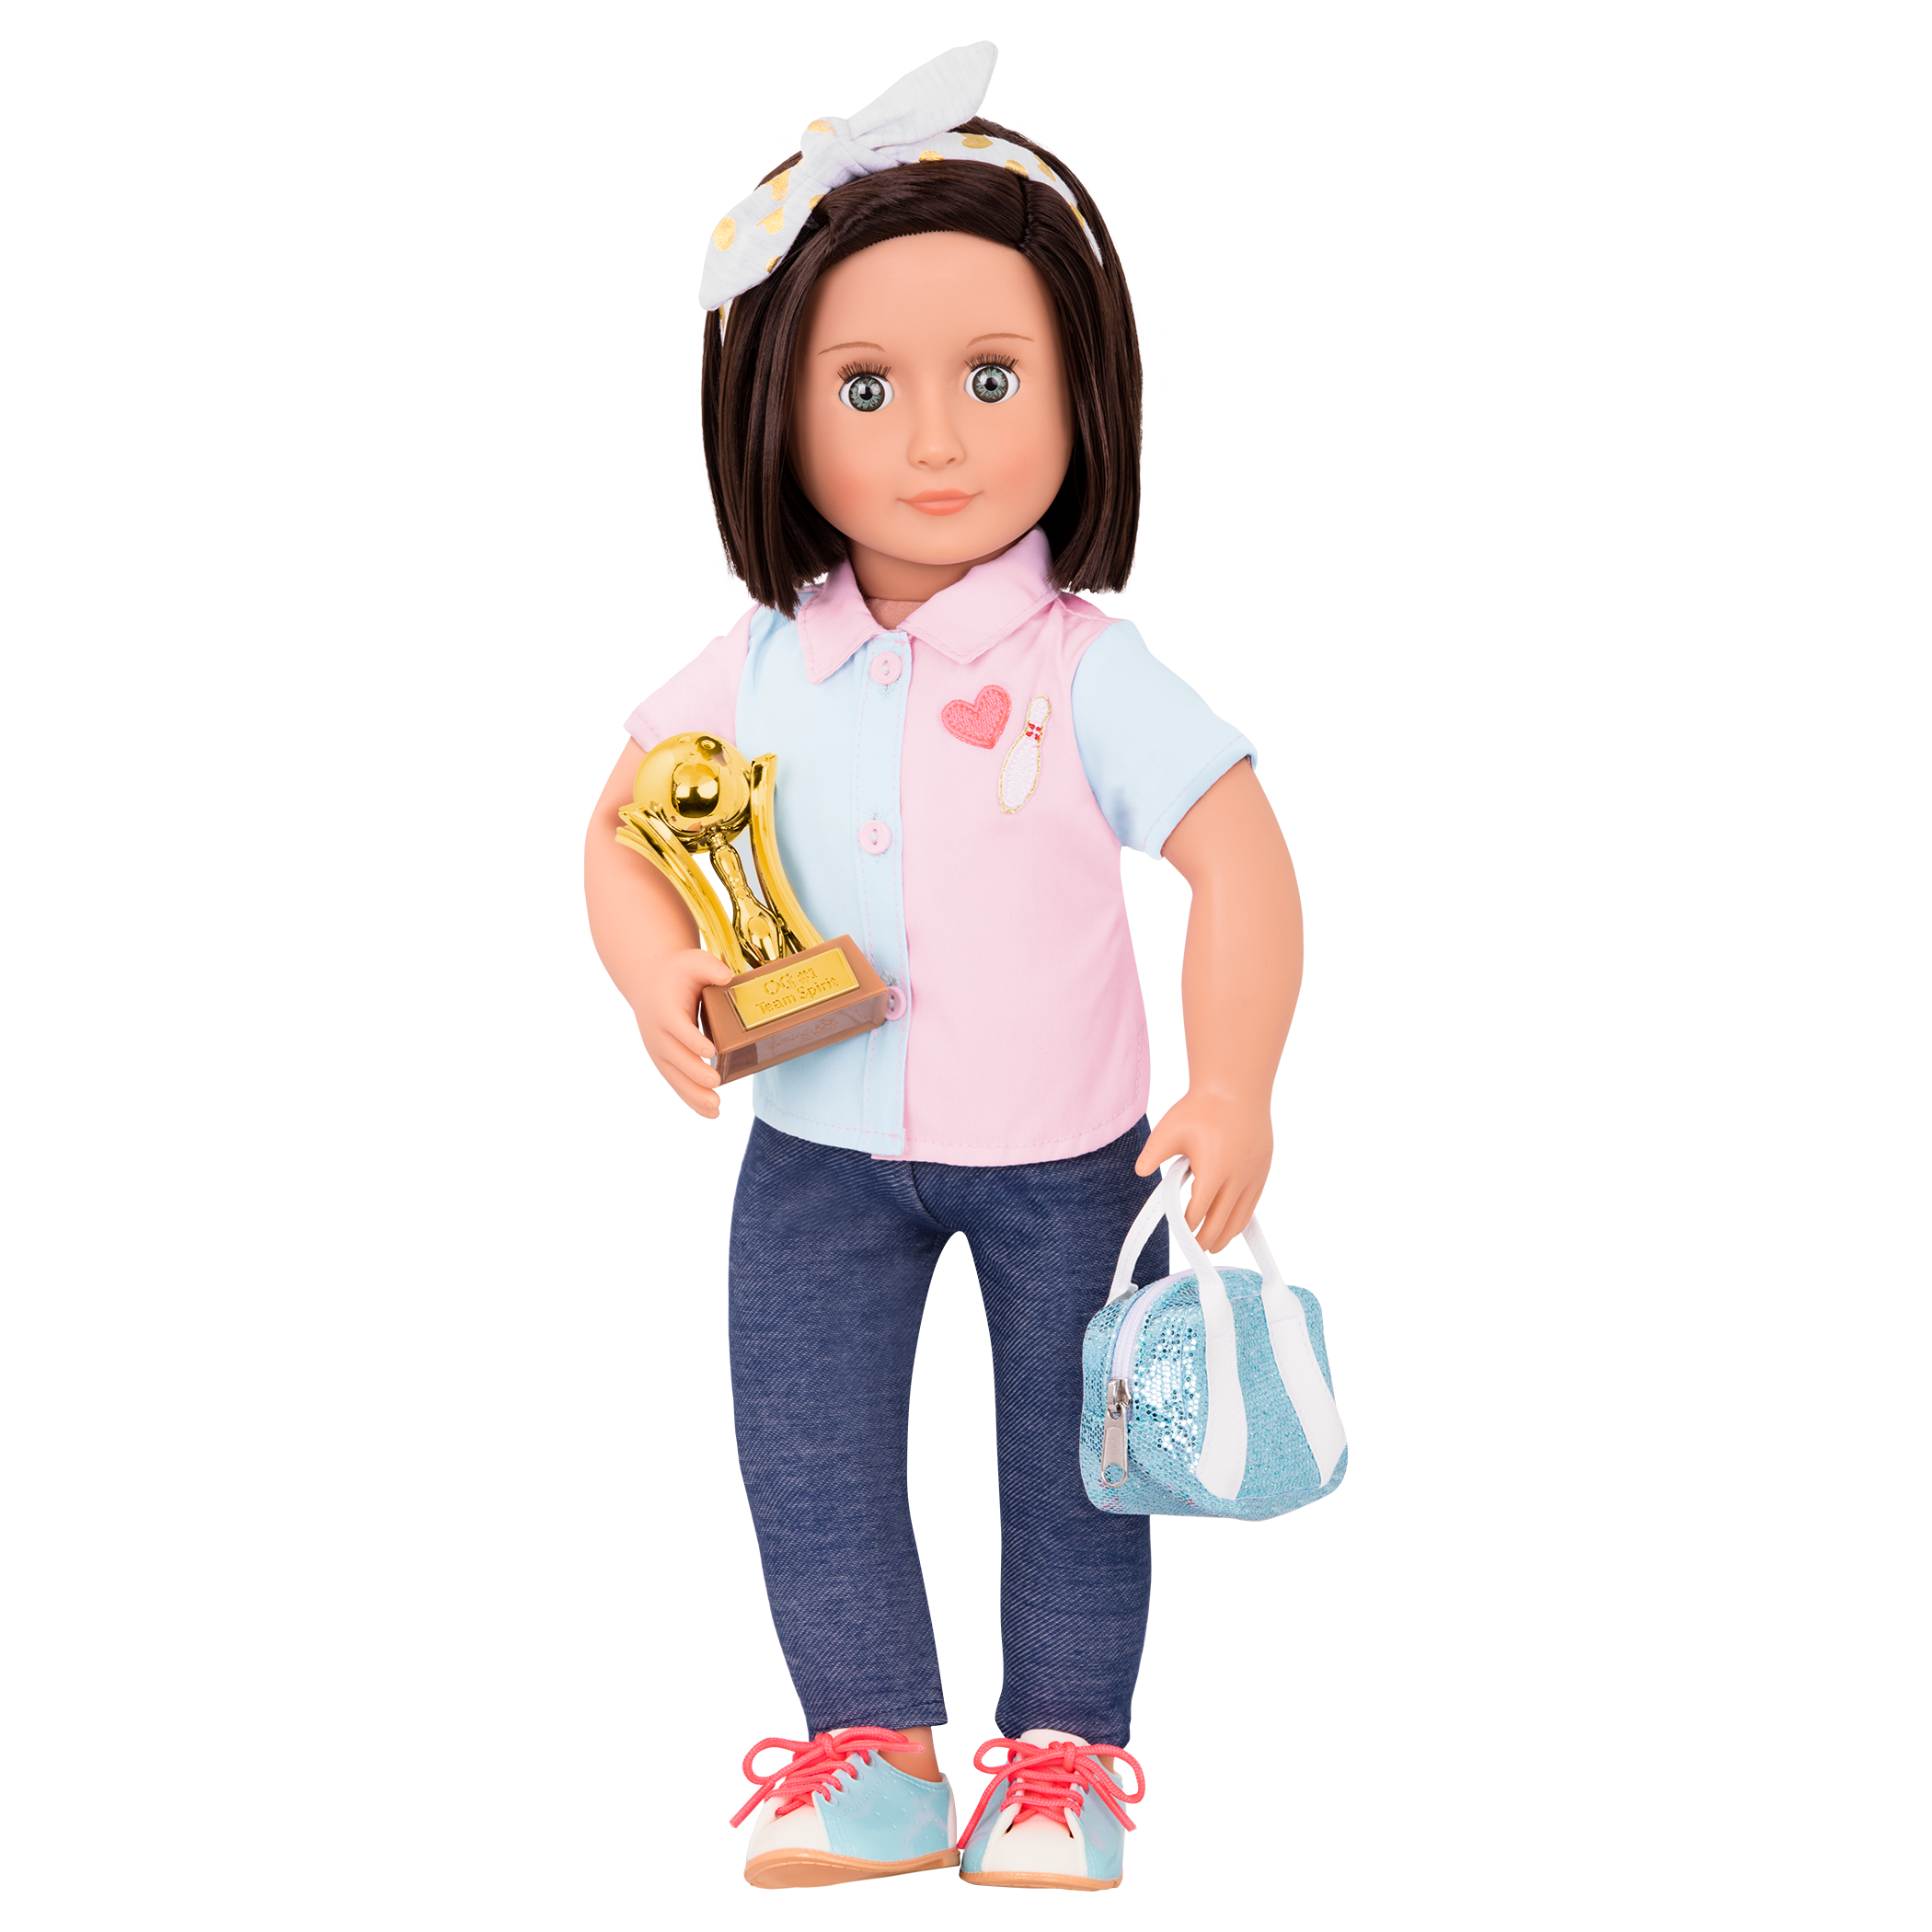 Everly Deluxe 18-inch Bowling Doll wearing uniform